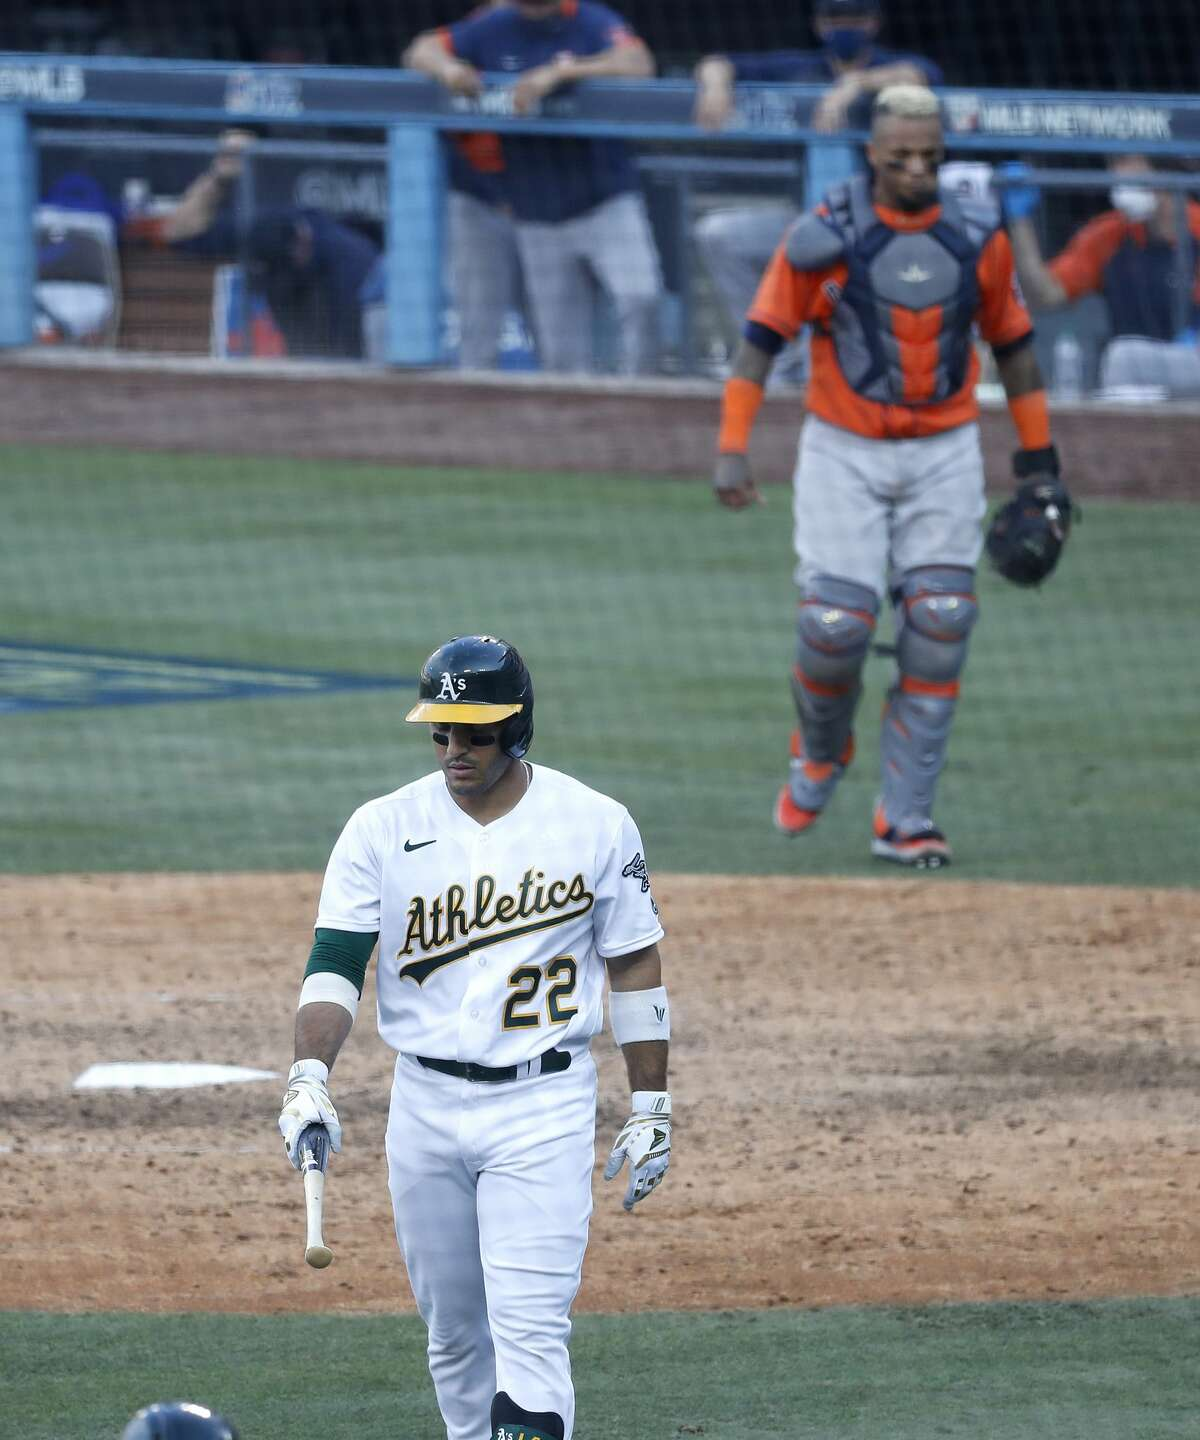 Oakland Athletics Ramon Laureano (22) reacts after Houston Astros catcher Martin Maldonado (15) caught his pop out during the ninth inning of Game 1 of the American League Division Series, Monday, October 5, 2020, in Los Angeles, at Dodger Stadium.